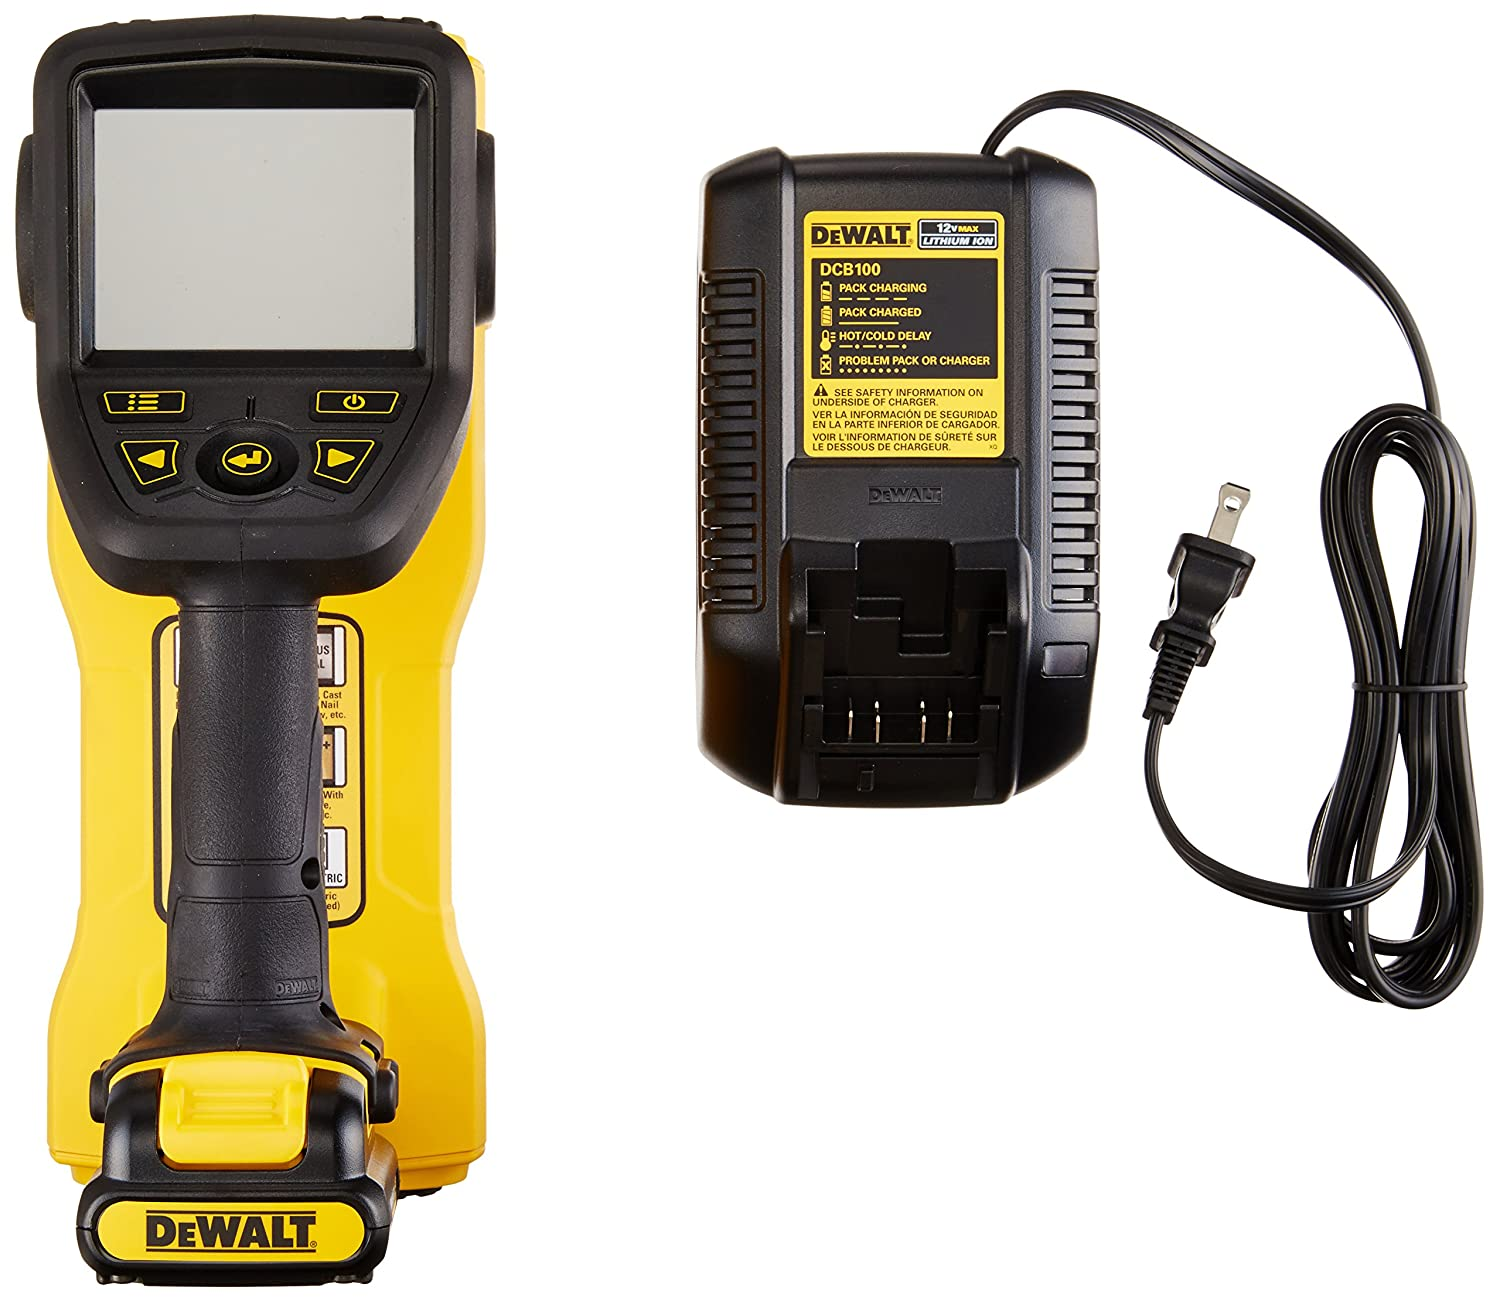 Dewalt Dct419s1 12v Max Hand Held Wall Scanner Place The Circuit Board In Cavity And Slot Battery Pack Into